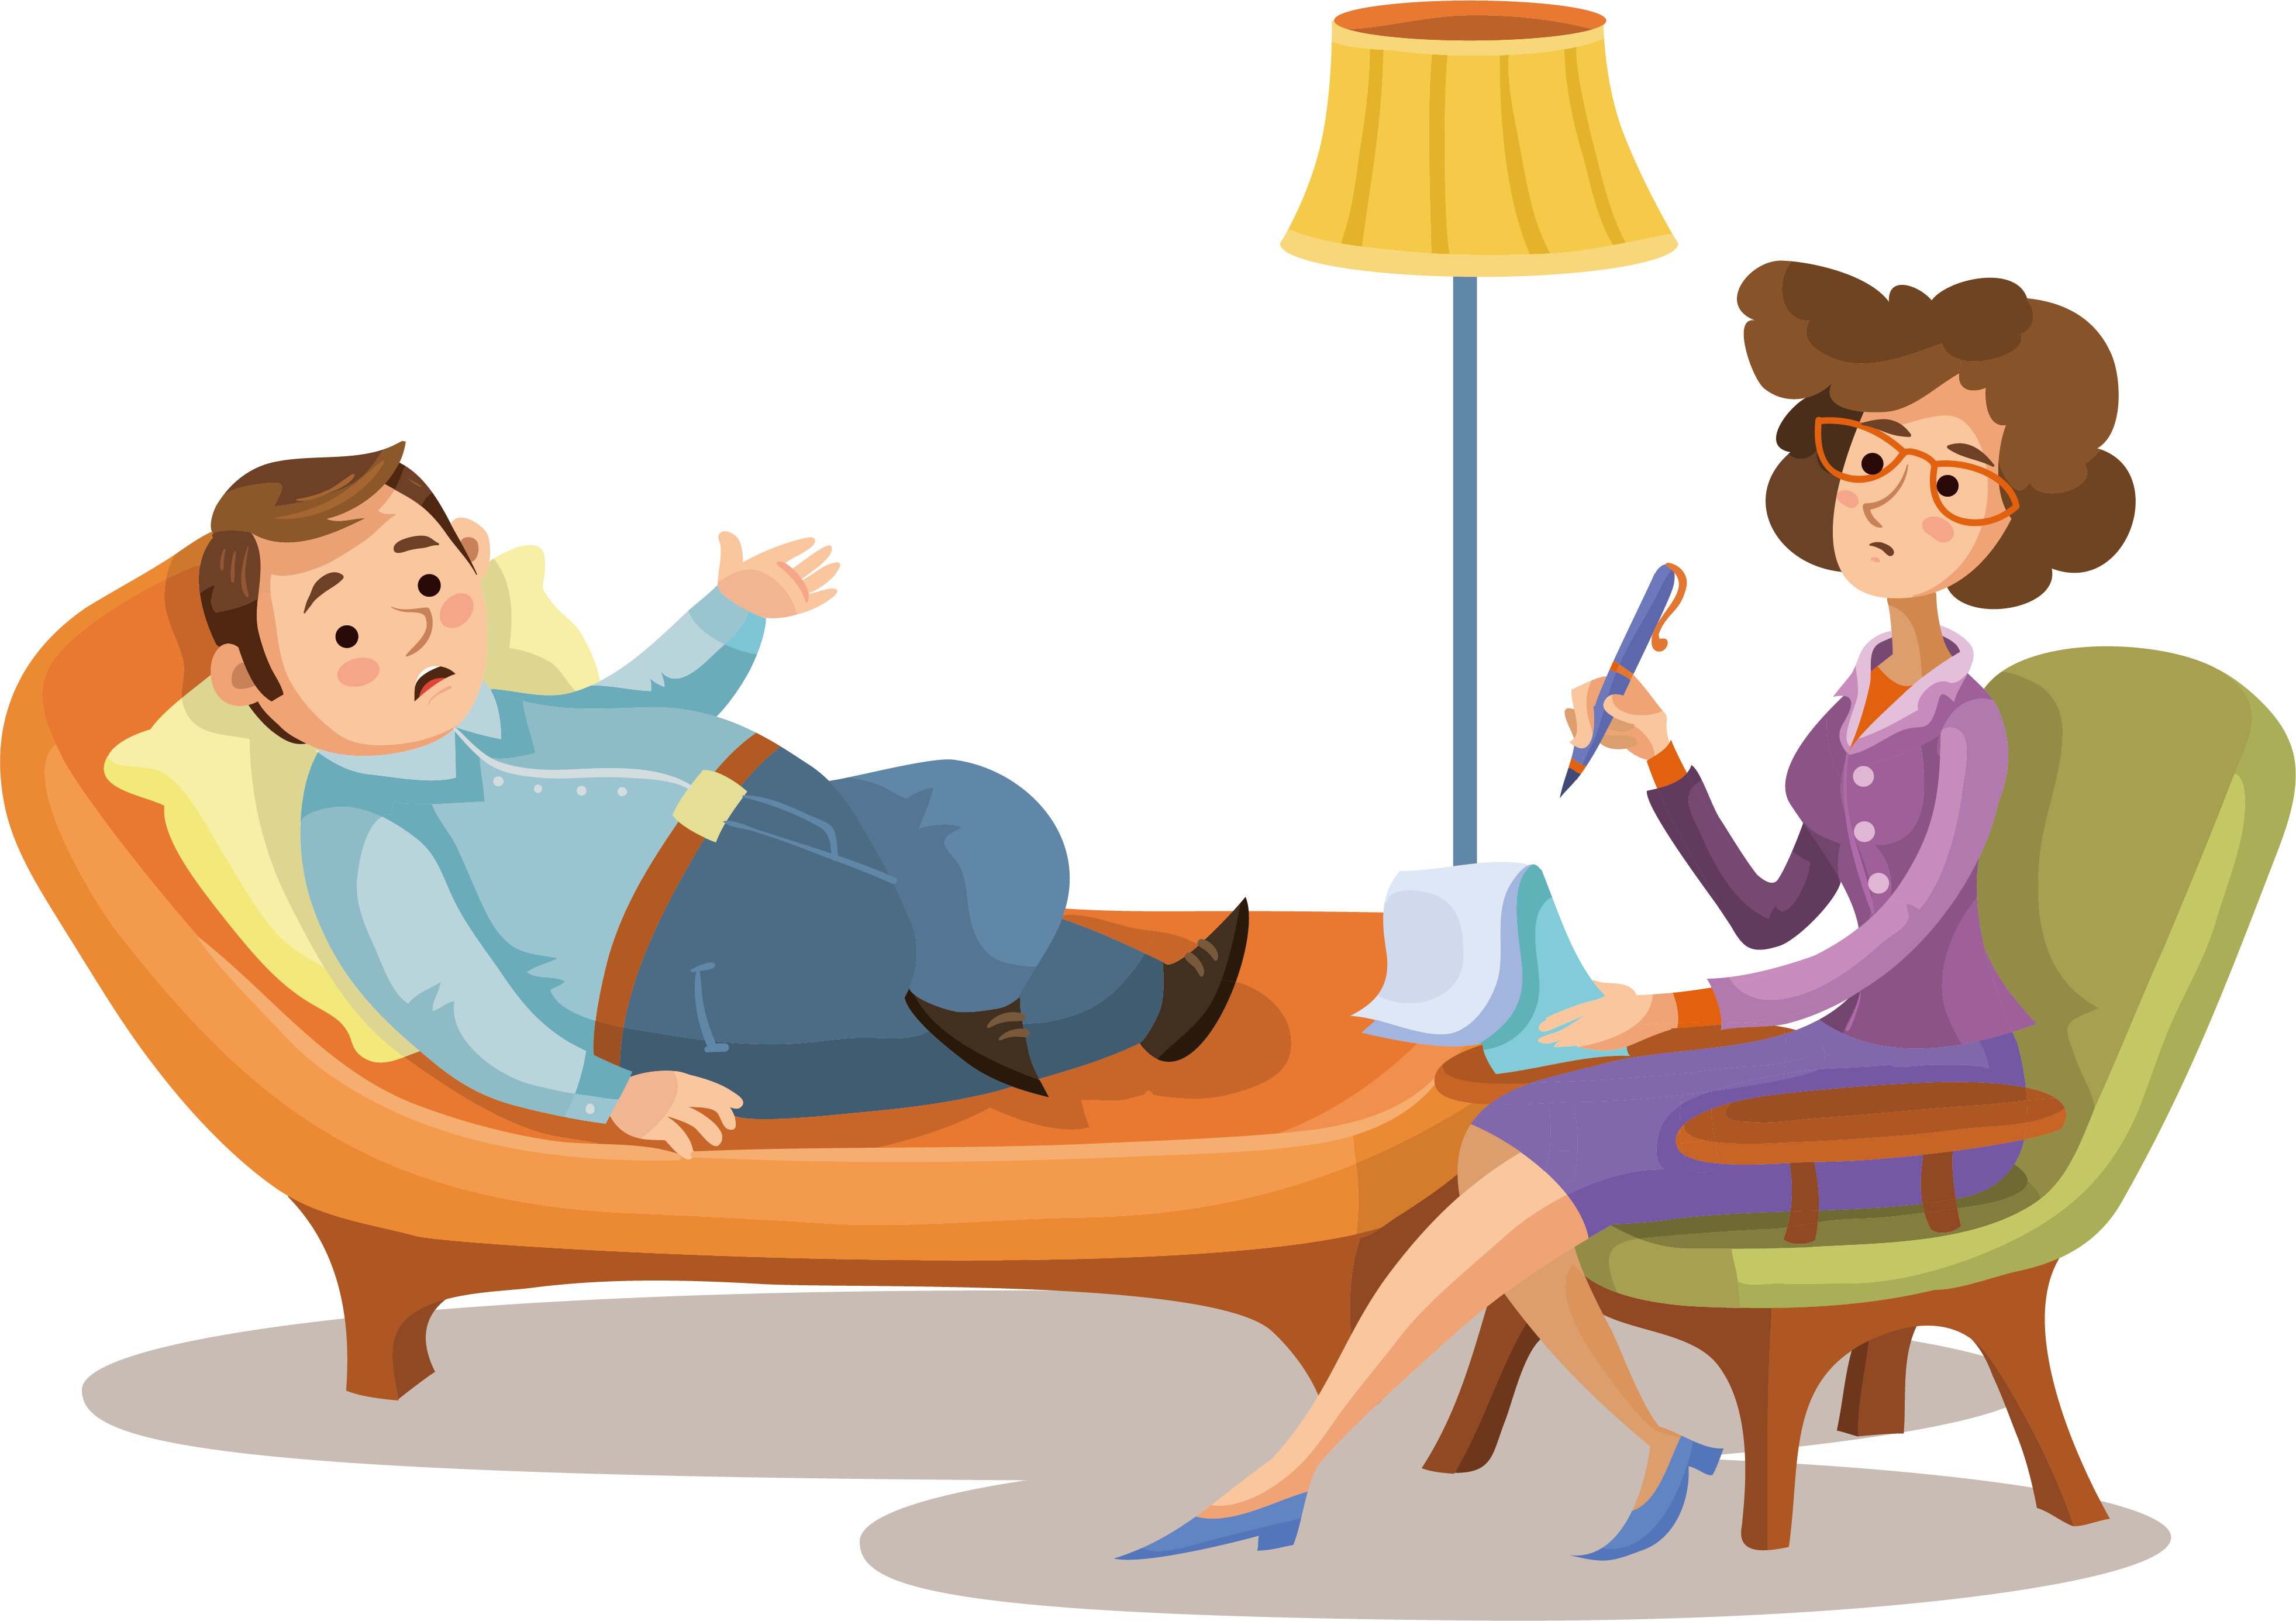 Psychotherapist cartoon psychologist illustration. Couch clipart psychotherapy